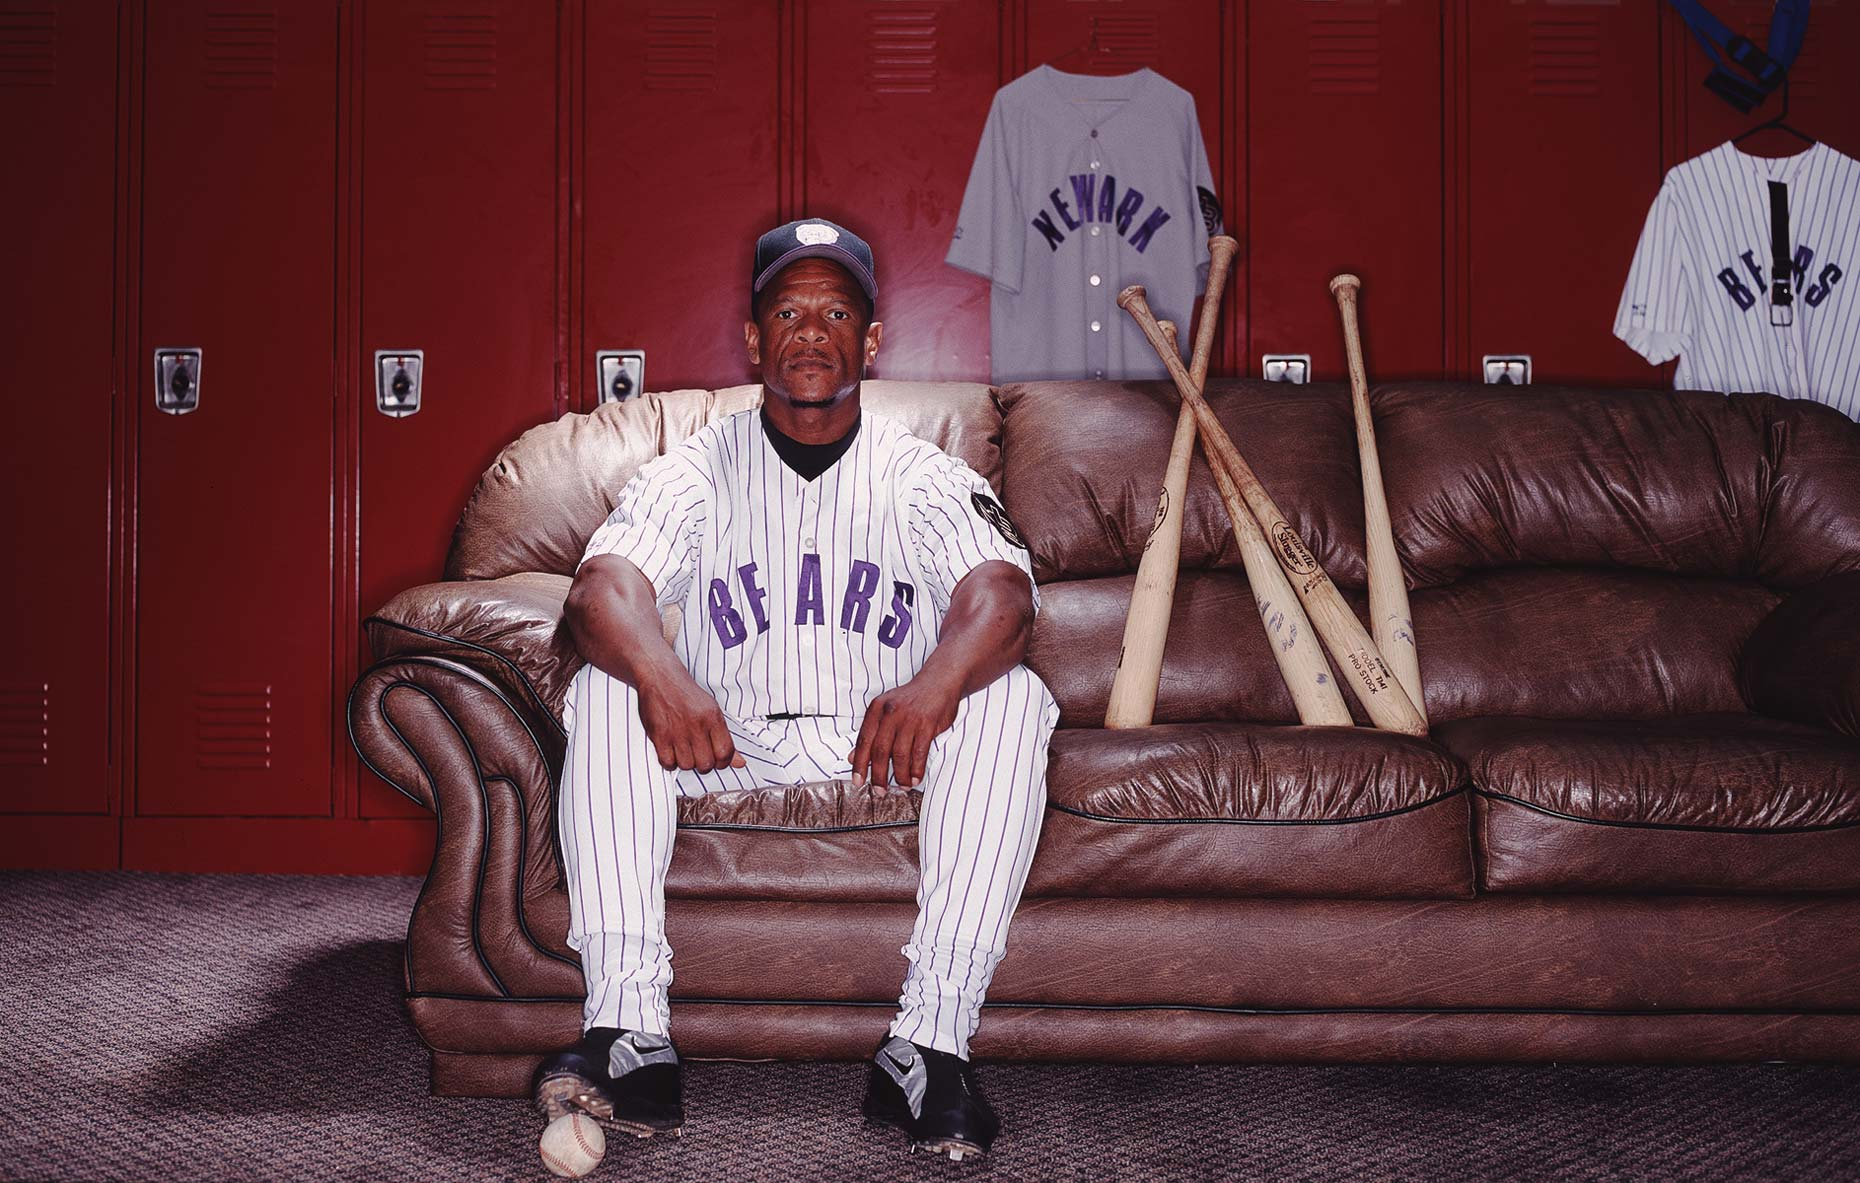 Ricky Henderson  |  Major League Baseball player  |   Sports portrait photographer Jeffery Salter